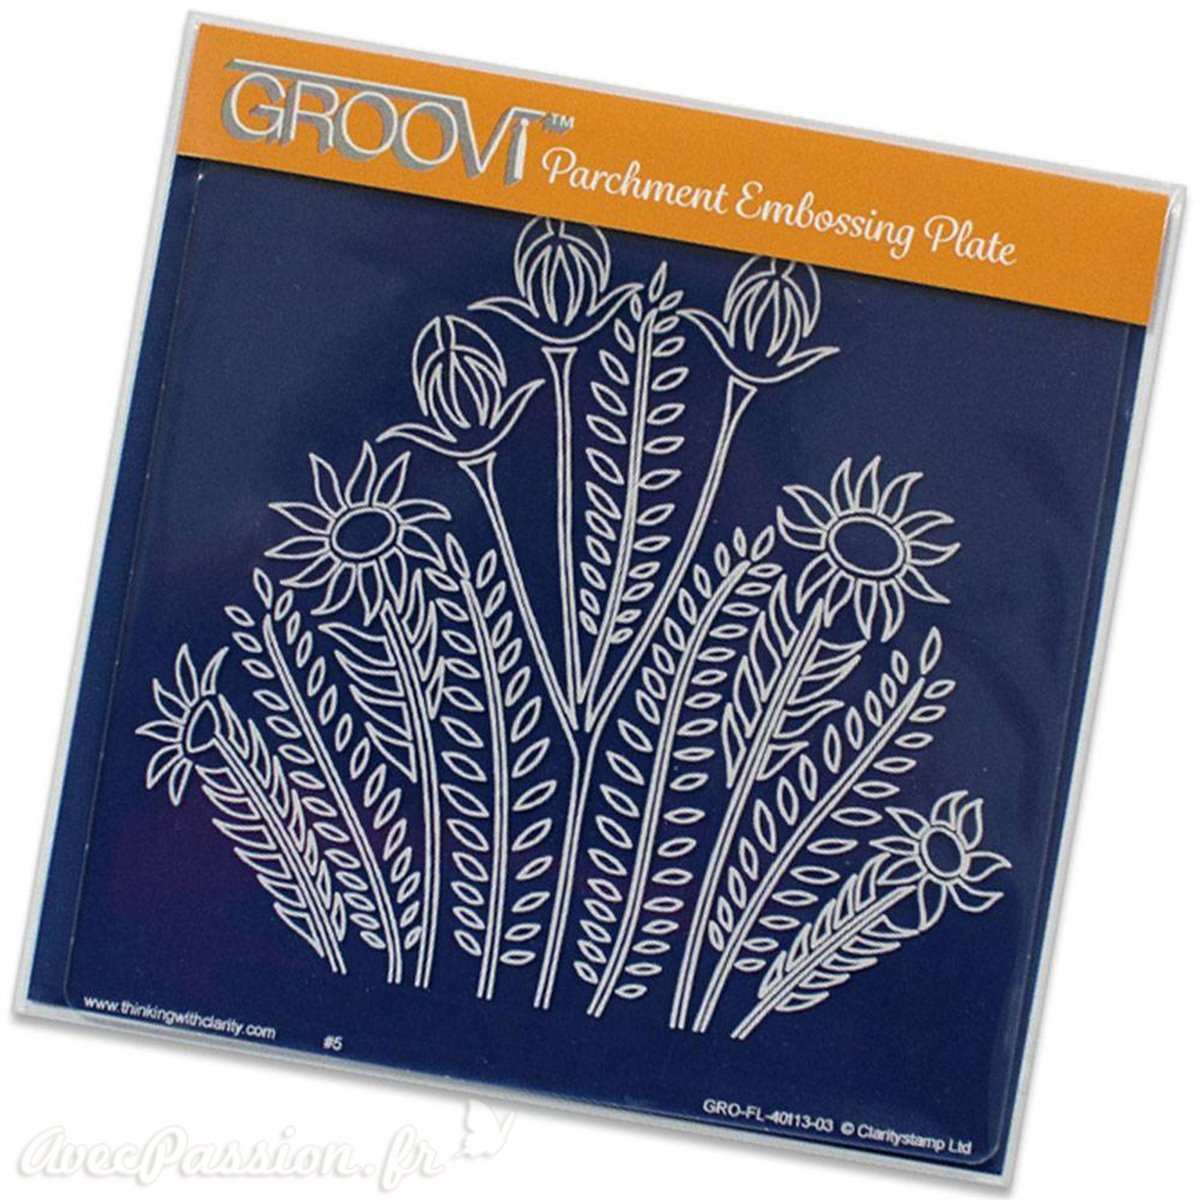 Groovi Embossing Plate ~ Wild Flowers Square Plate, GRO40113 Claritystamp